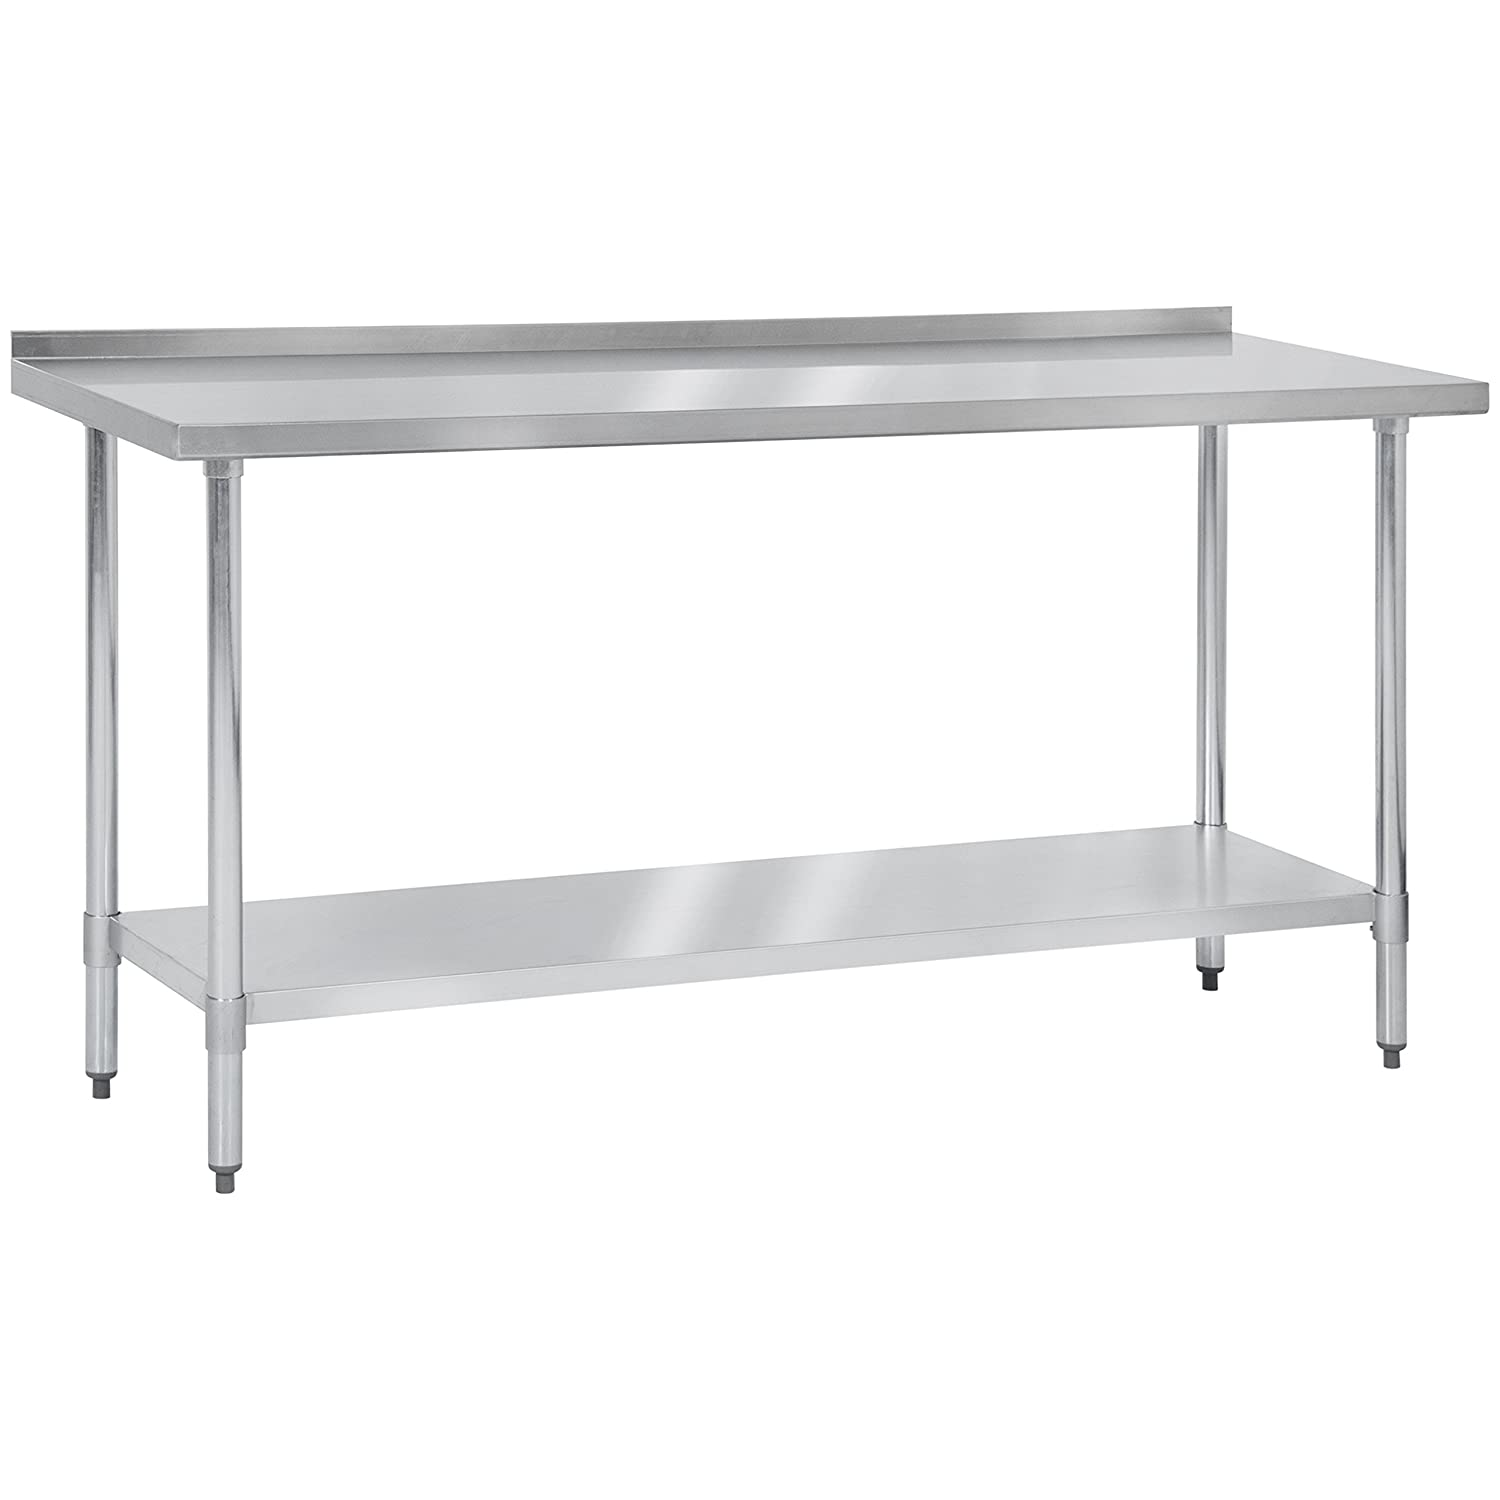 Amazon.com: Worktables & Workstations - Food Service Equipment ...